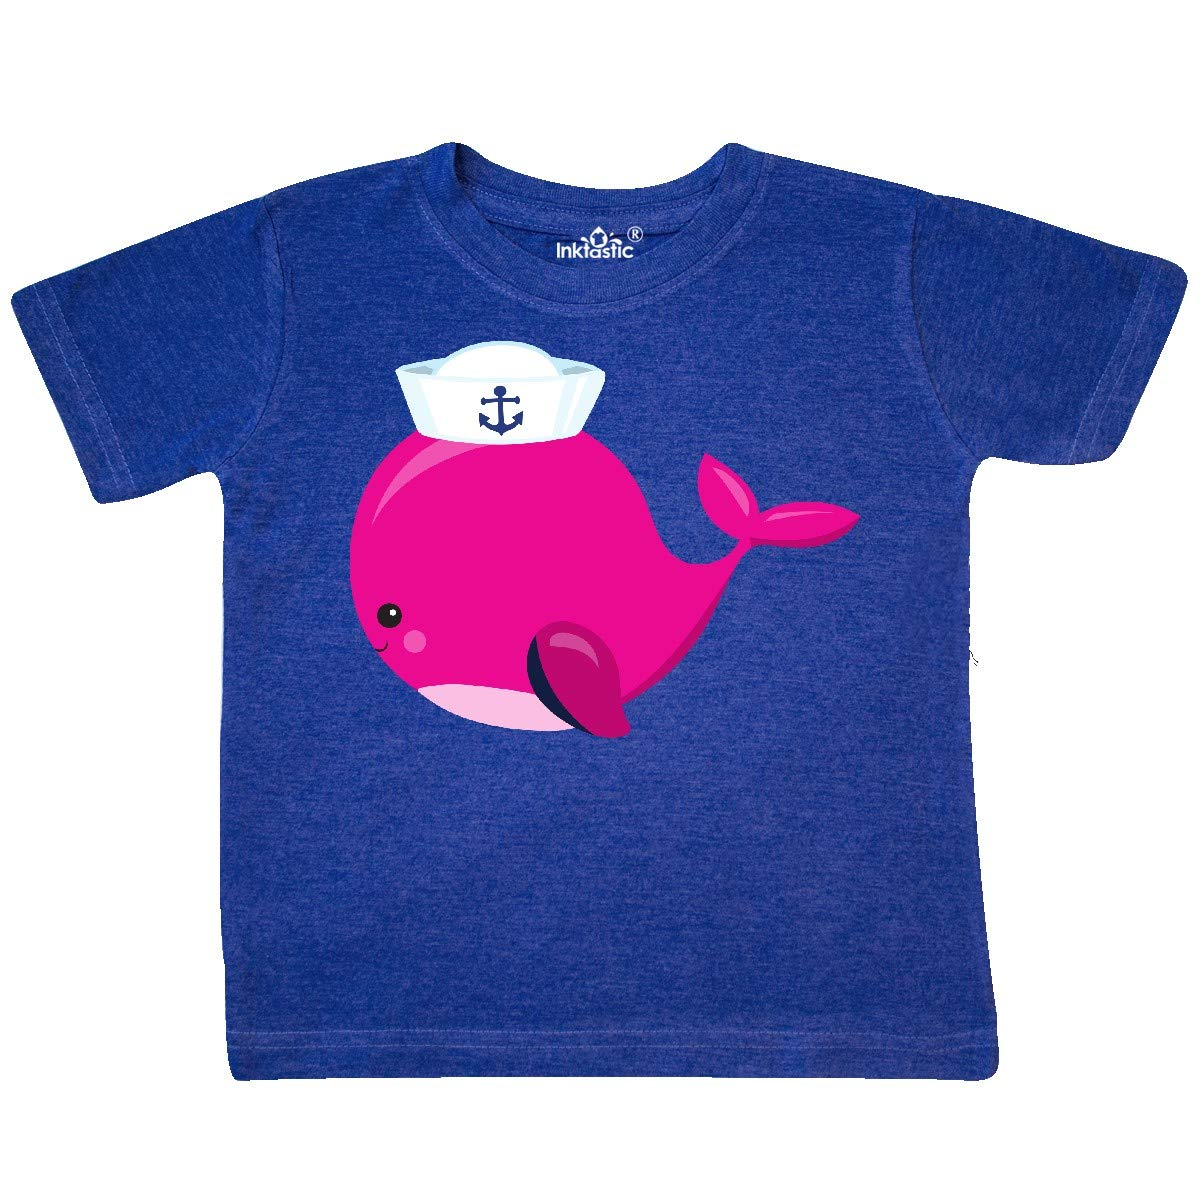 Sailor Whale Toddler T-Shirt inktastic Pink Whale Wearing Sailor Hat